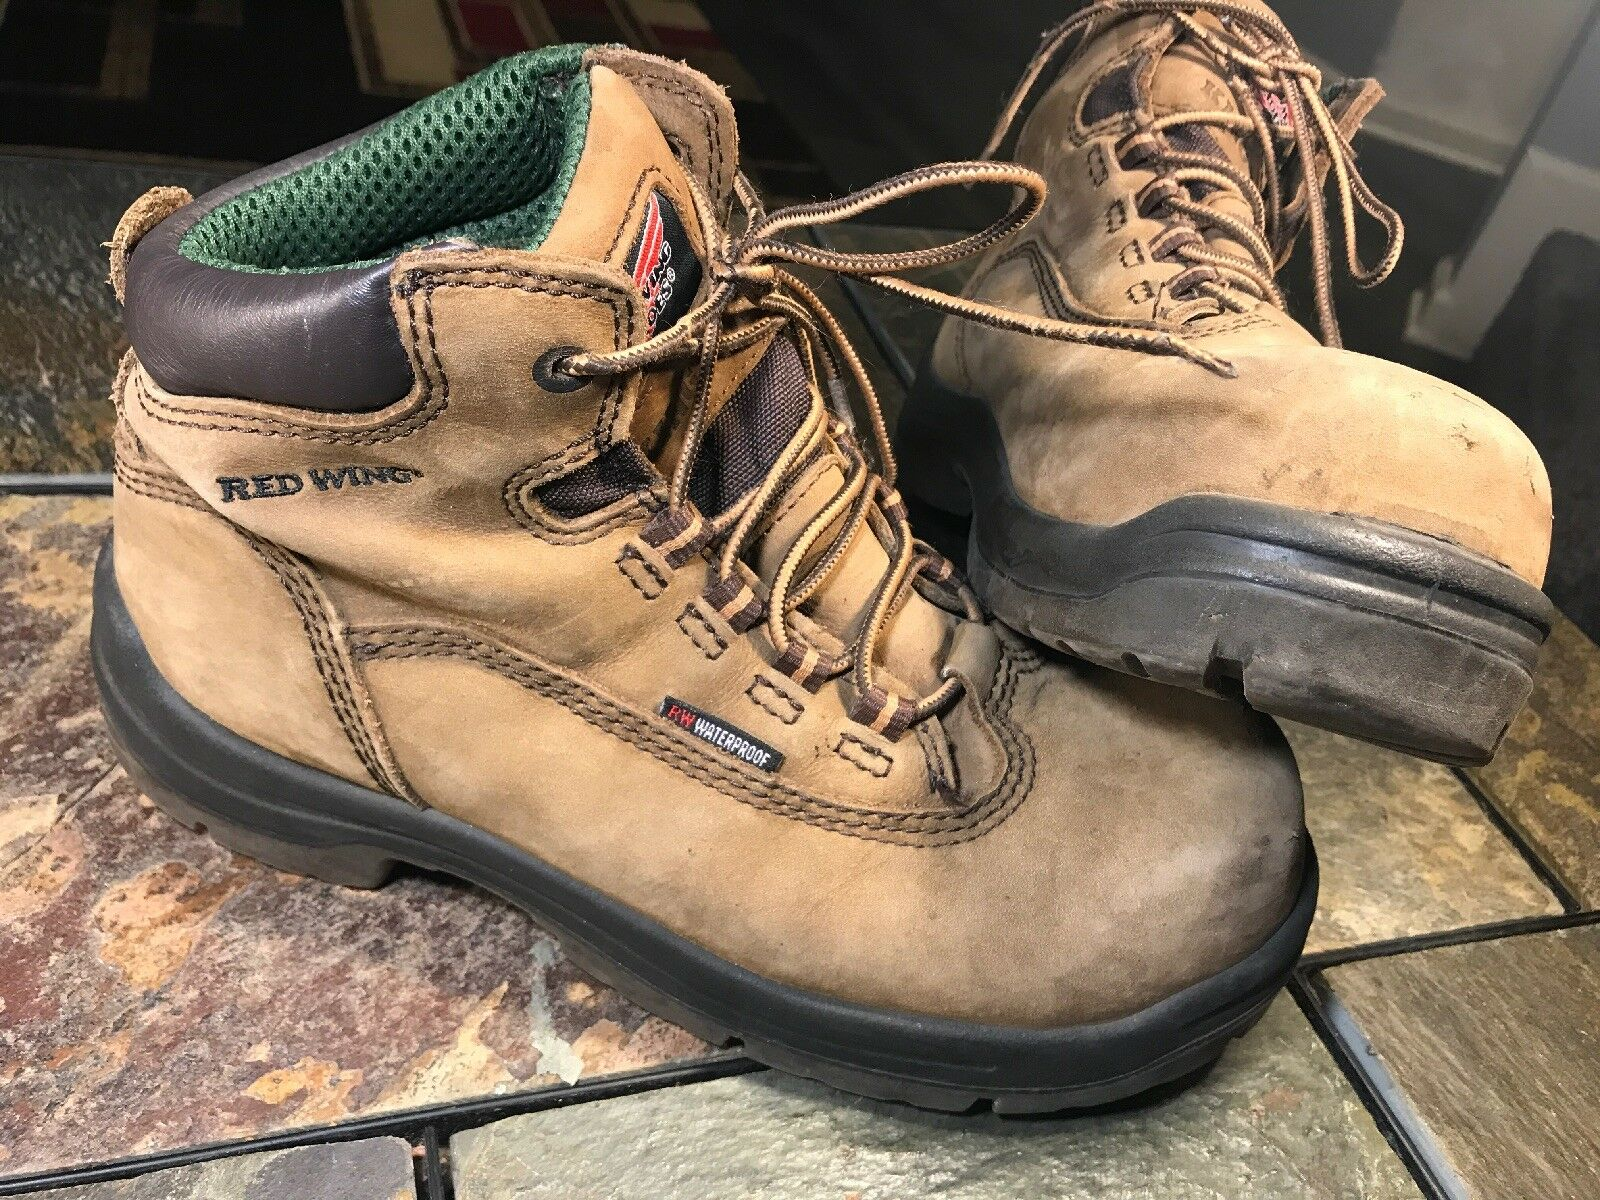 Red Wing shoes Women's Tan Leather Work Boots King Toe Waterproof Size 7